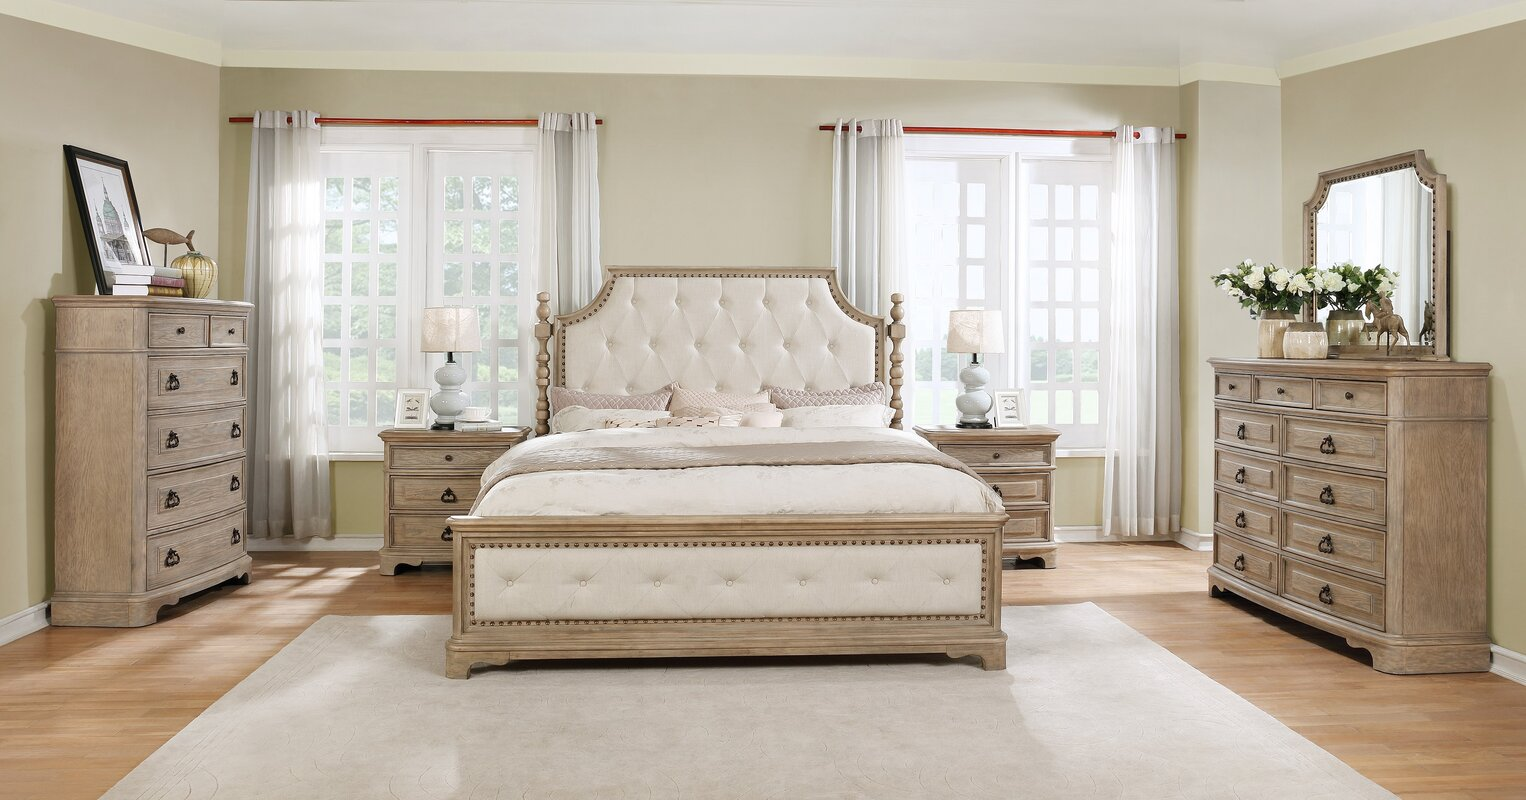 Pennington Platform 6 Piece Bedroom Set Interior Bedroom Ideas ookie1.com